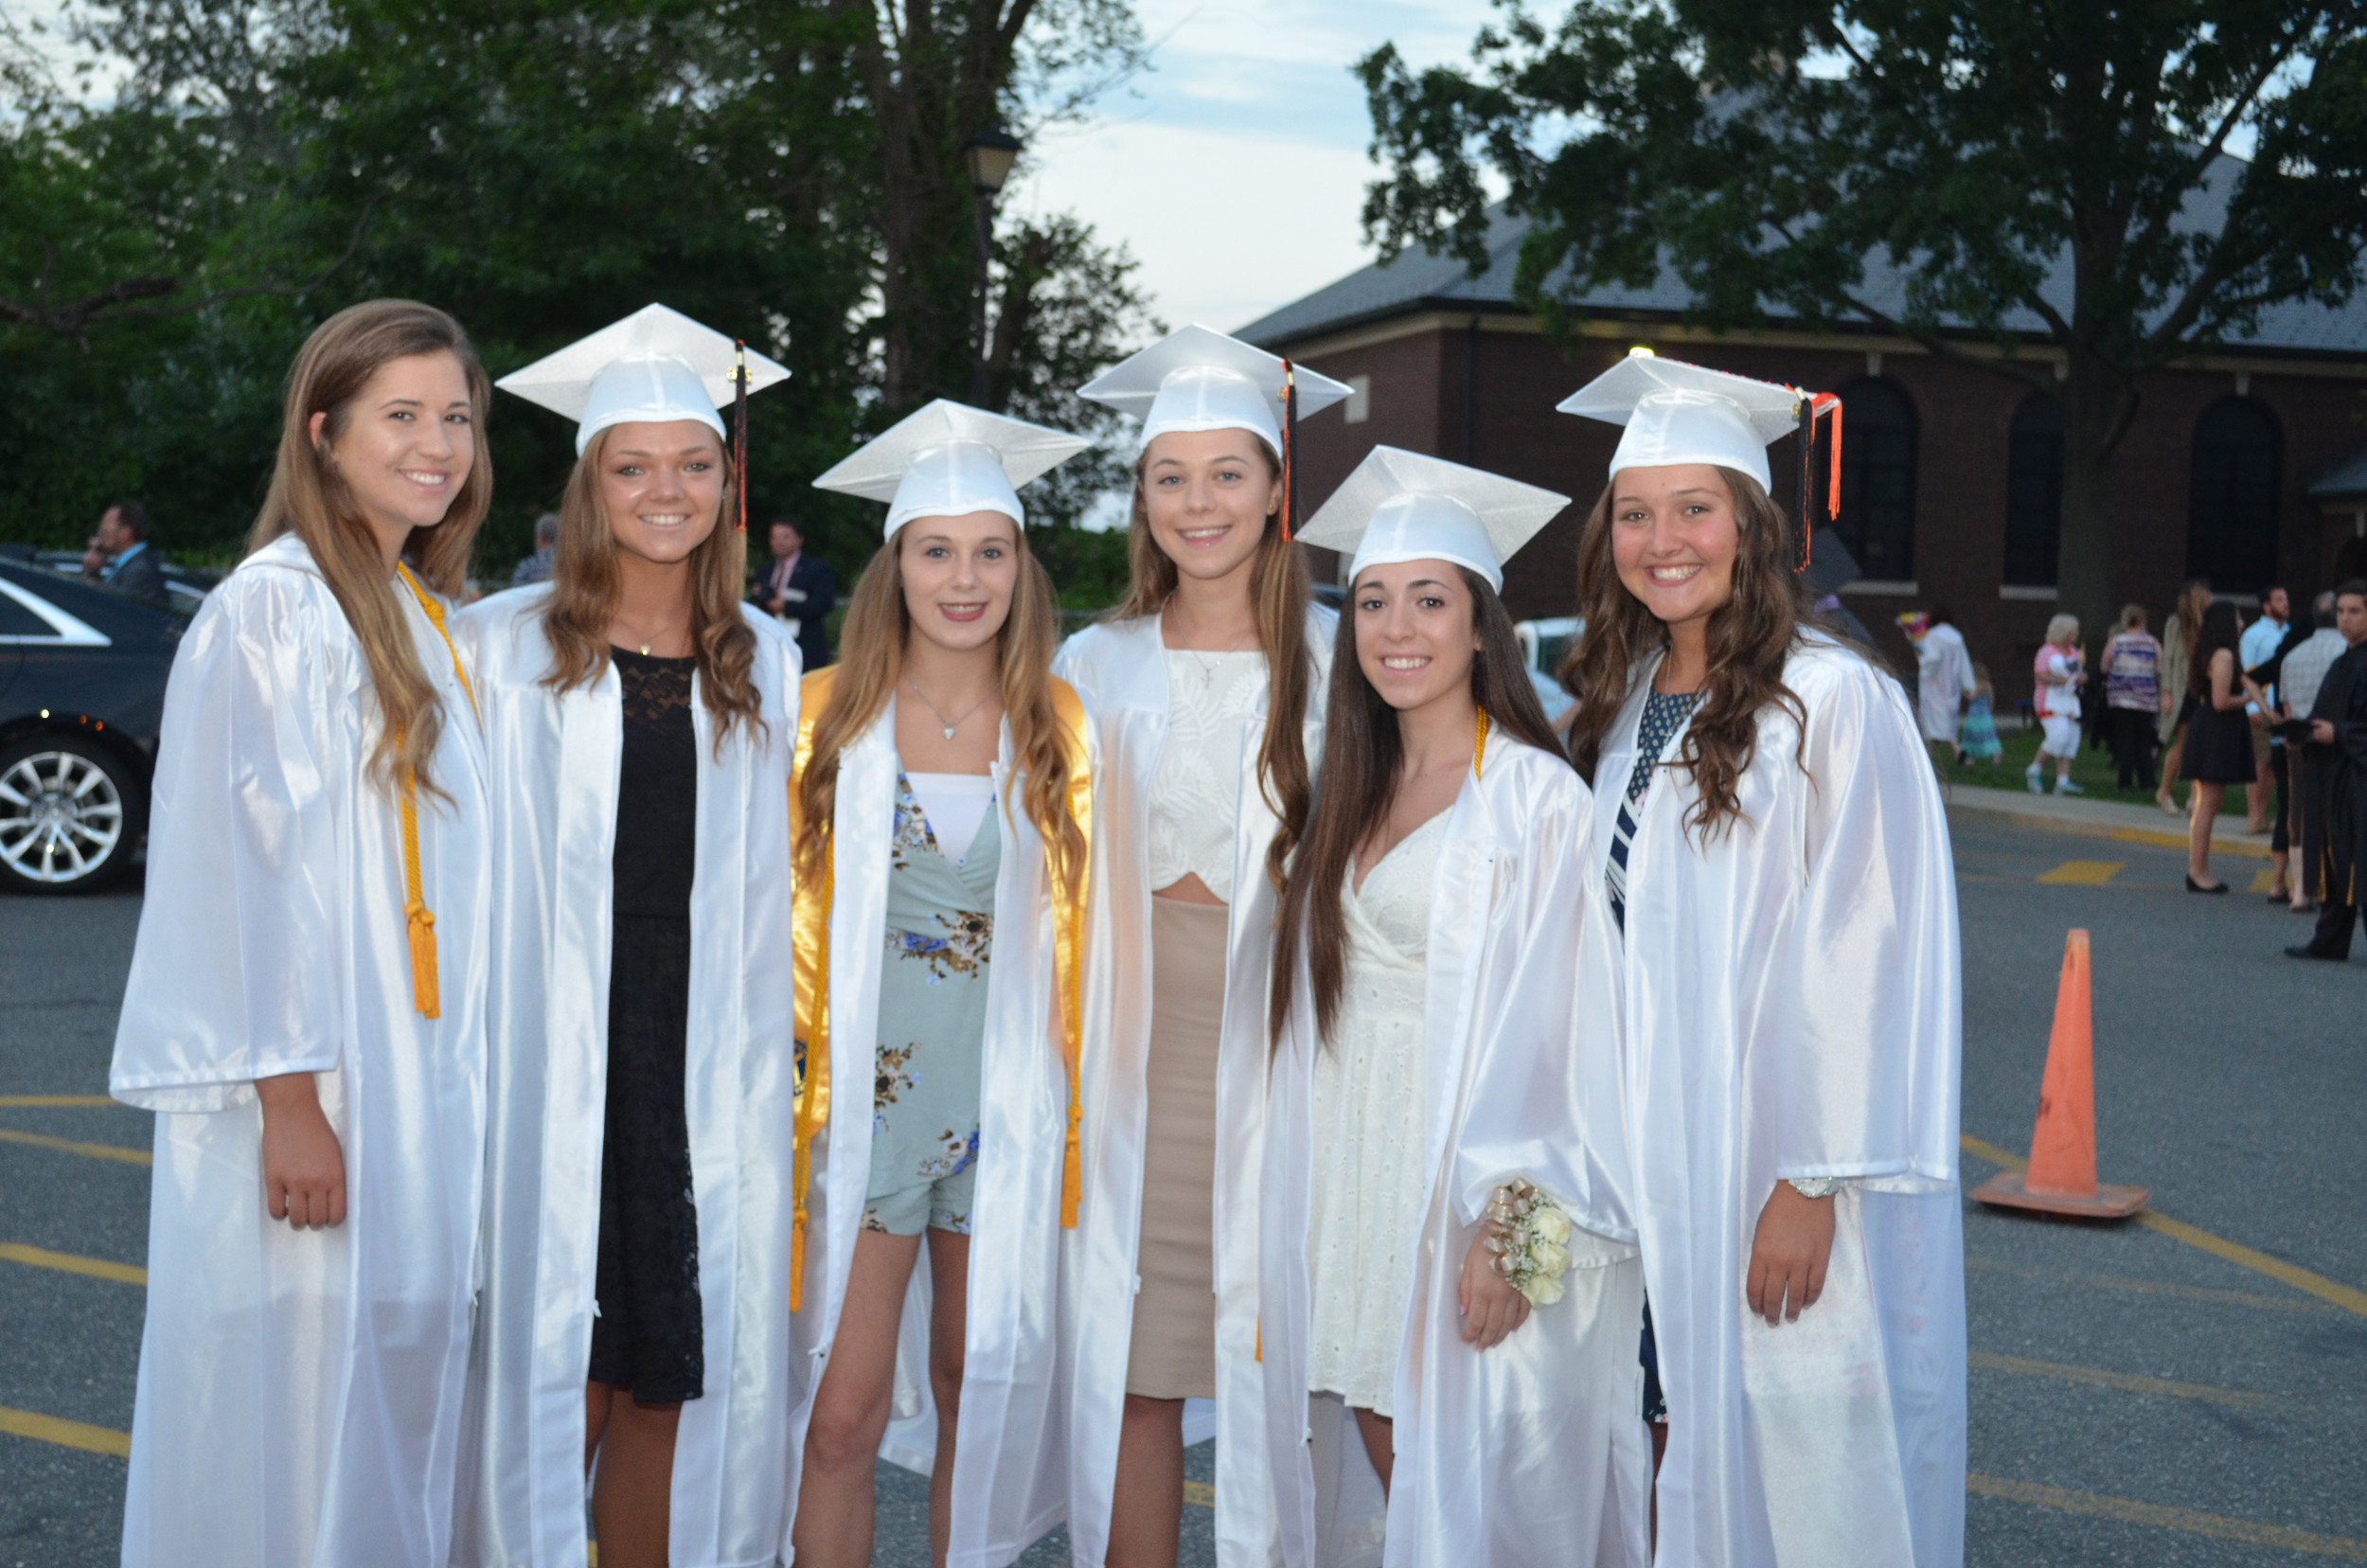 Graduates Rachael Putelo, Marisa Felbinger, Amanda Masterson, Erica Acampora, Samantha Bruzzo and Sydney O'Connor gathered for a photo outside of East Rockaway High School